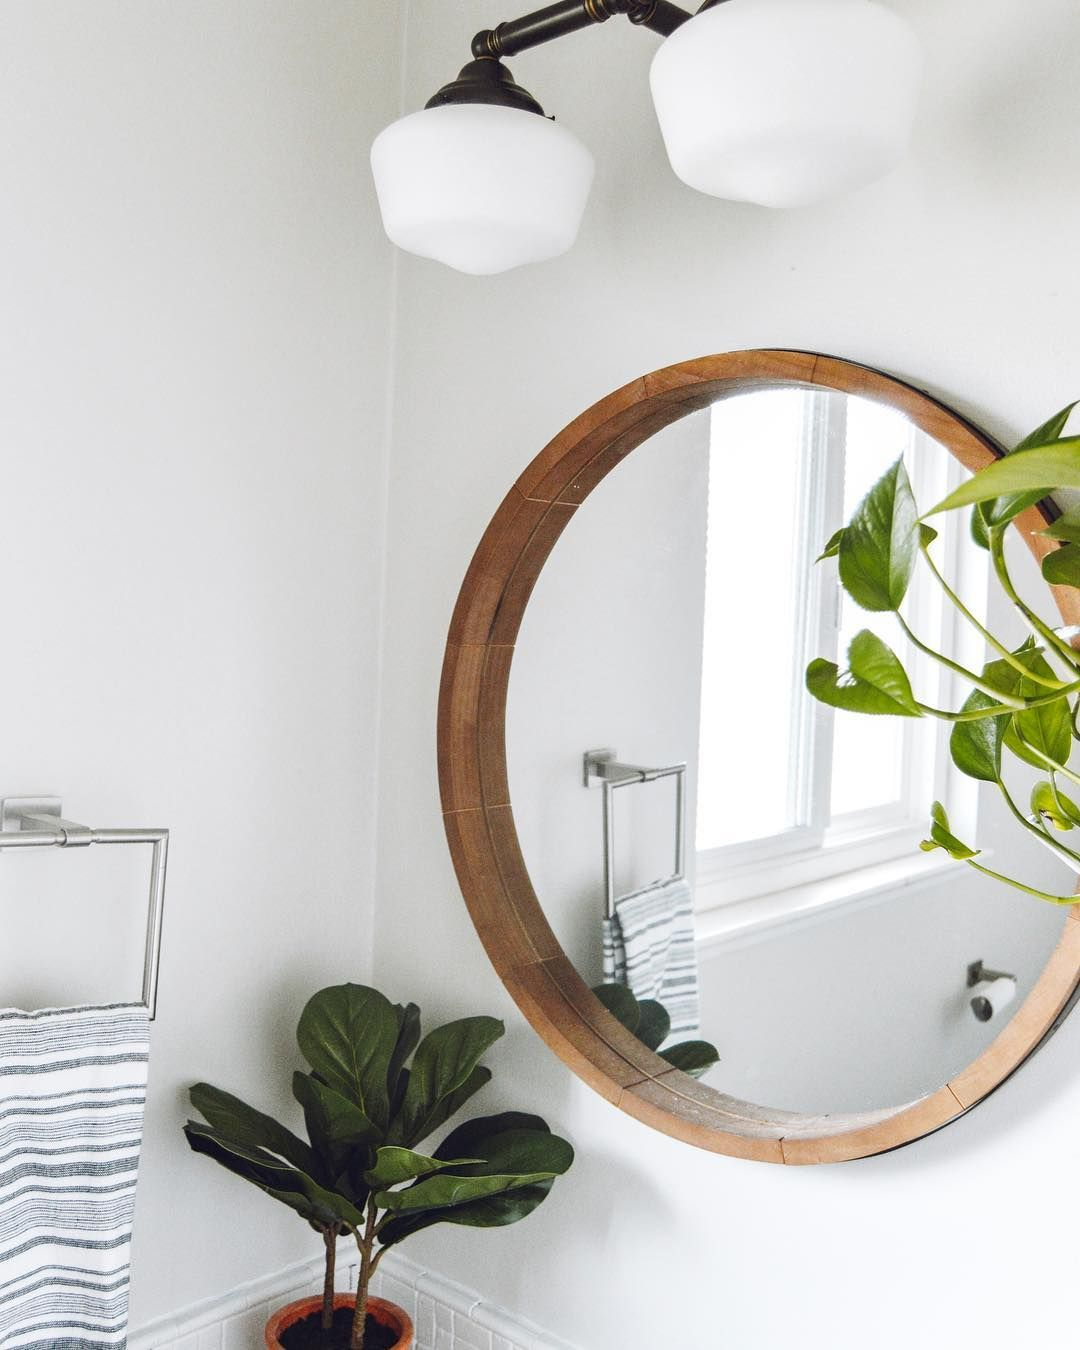 Round Decorative Wall Mirror Wood Barrel Frame Threshold Round Mirror Bathroom Small Bathroom Decor Wood Wall Mirror